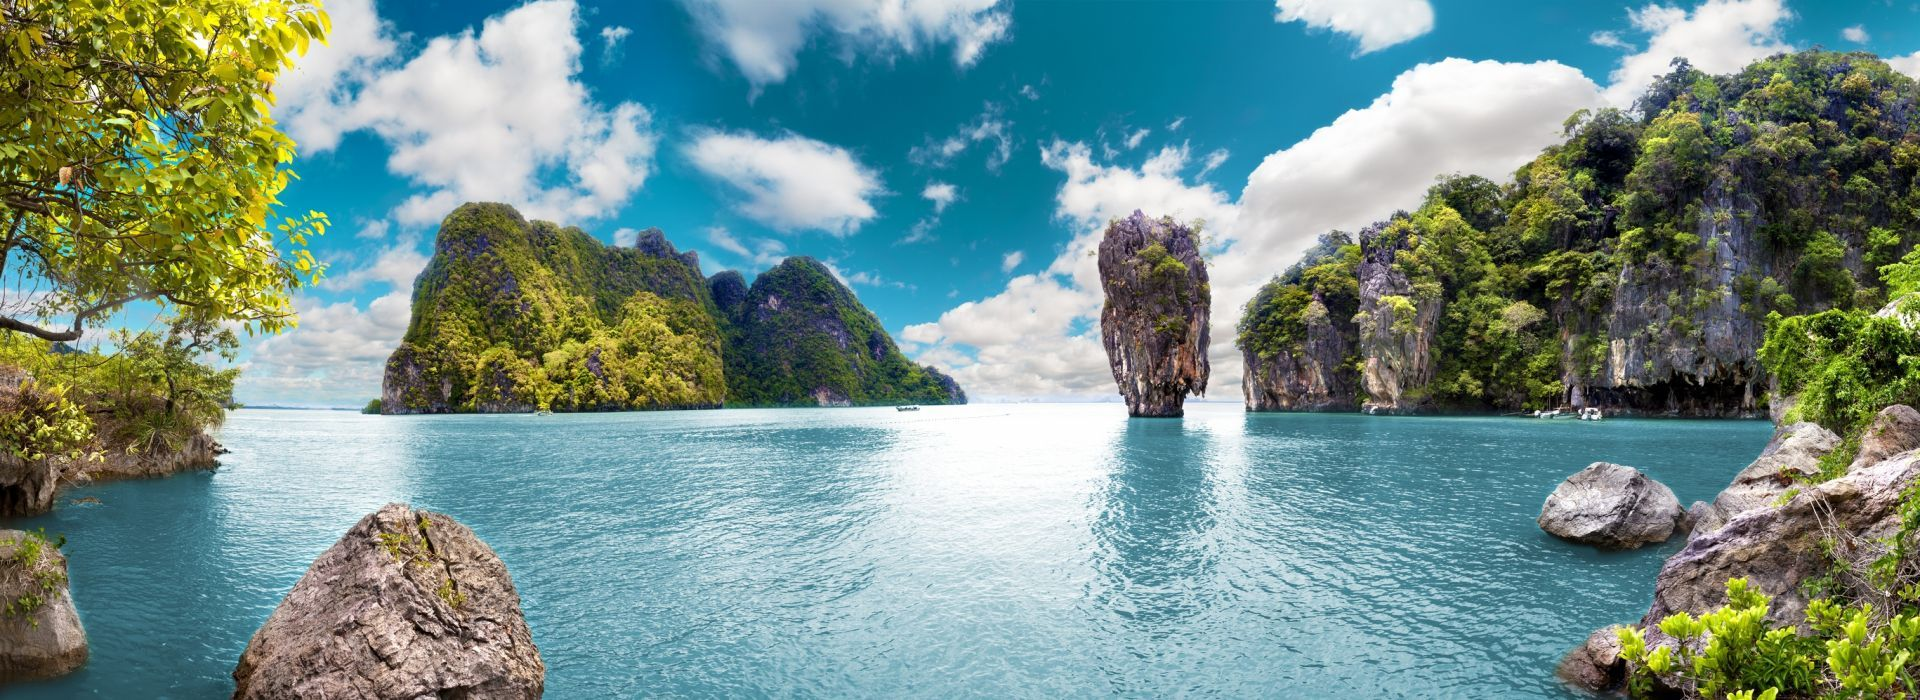 Countryside and village visits Tours in Thailand